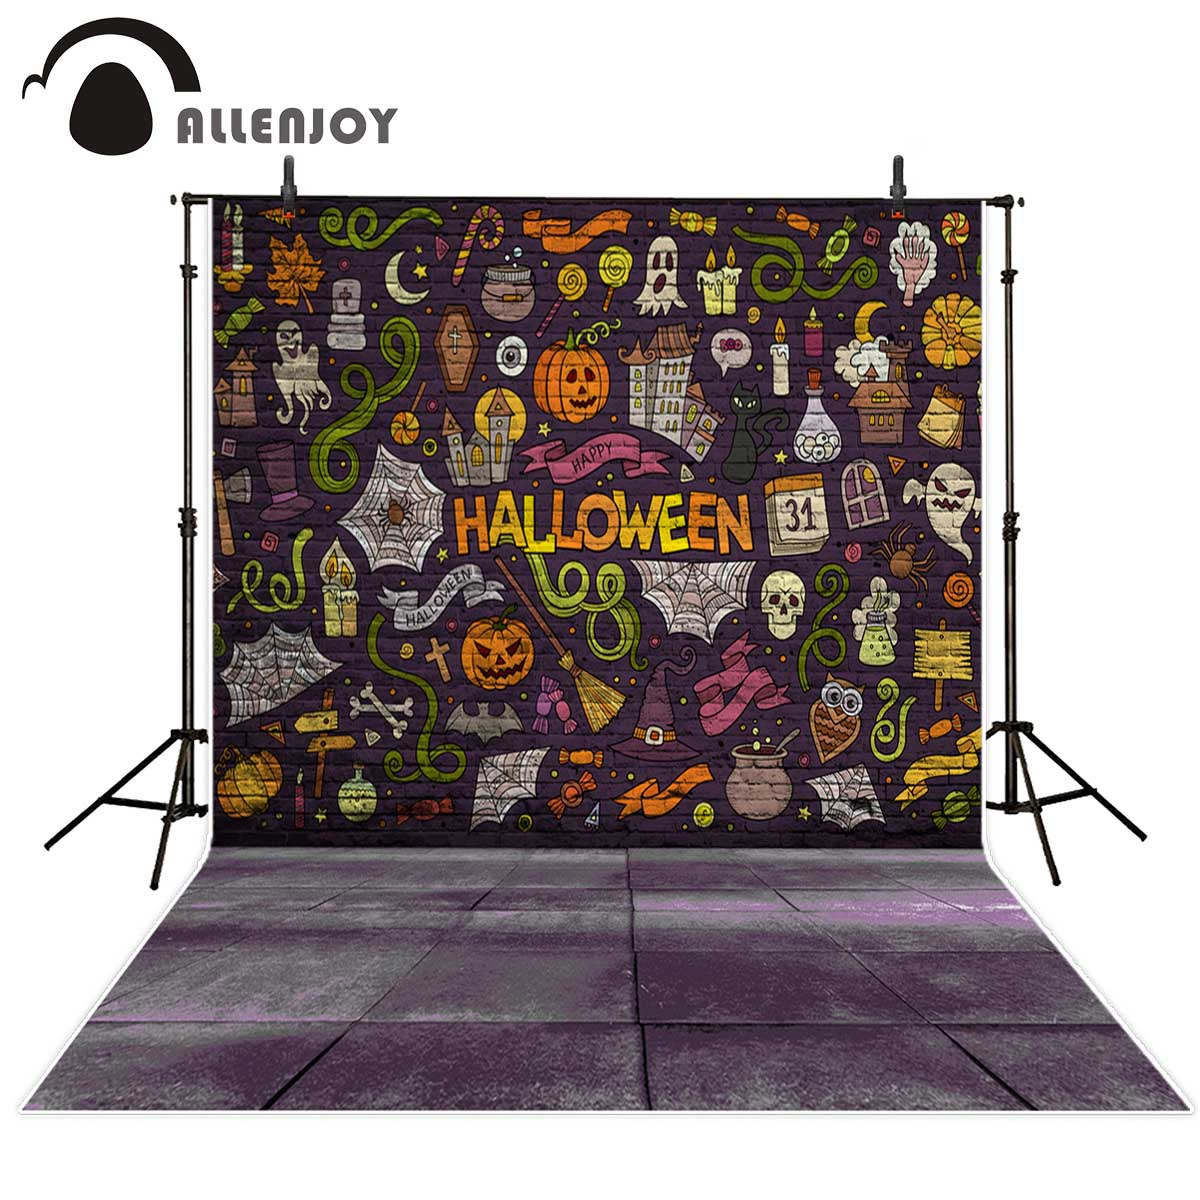 Allenjoy backgrounds for photo studio Brick Wall Pumpkin Wizards Graffiti Halloween backdrop photocall professional customize allenjoy background for photo studio full moon spider black cat pumpkin halloween backdrop newborn original design fantasy props